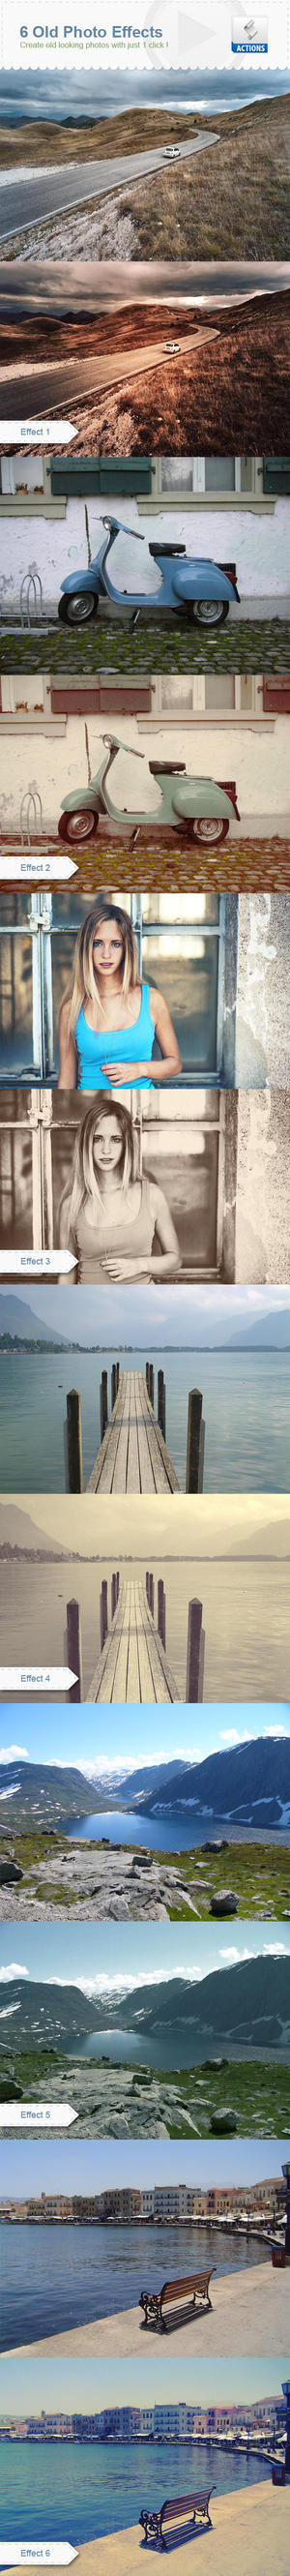 6 Old Photo Effects by h3design